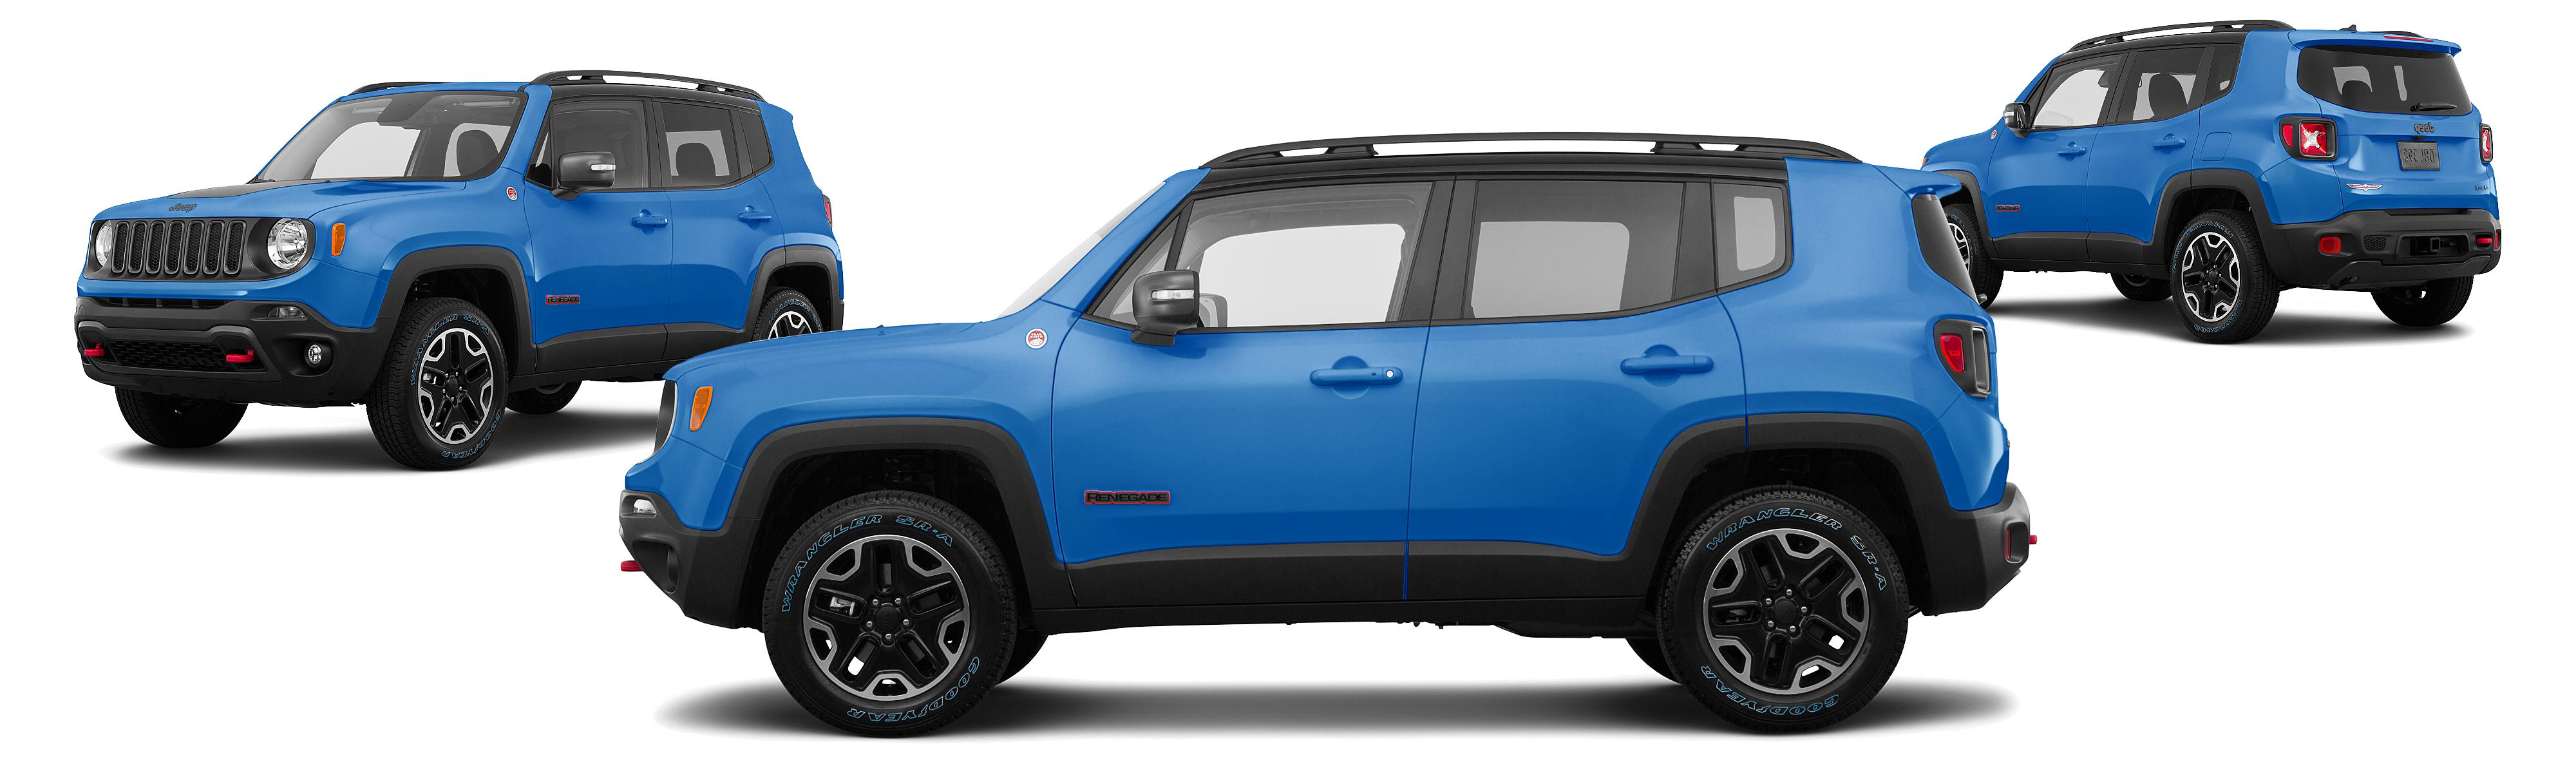 Jeep Renegade Trailhawk Blue Stunning Jeep Renegade Renegade